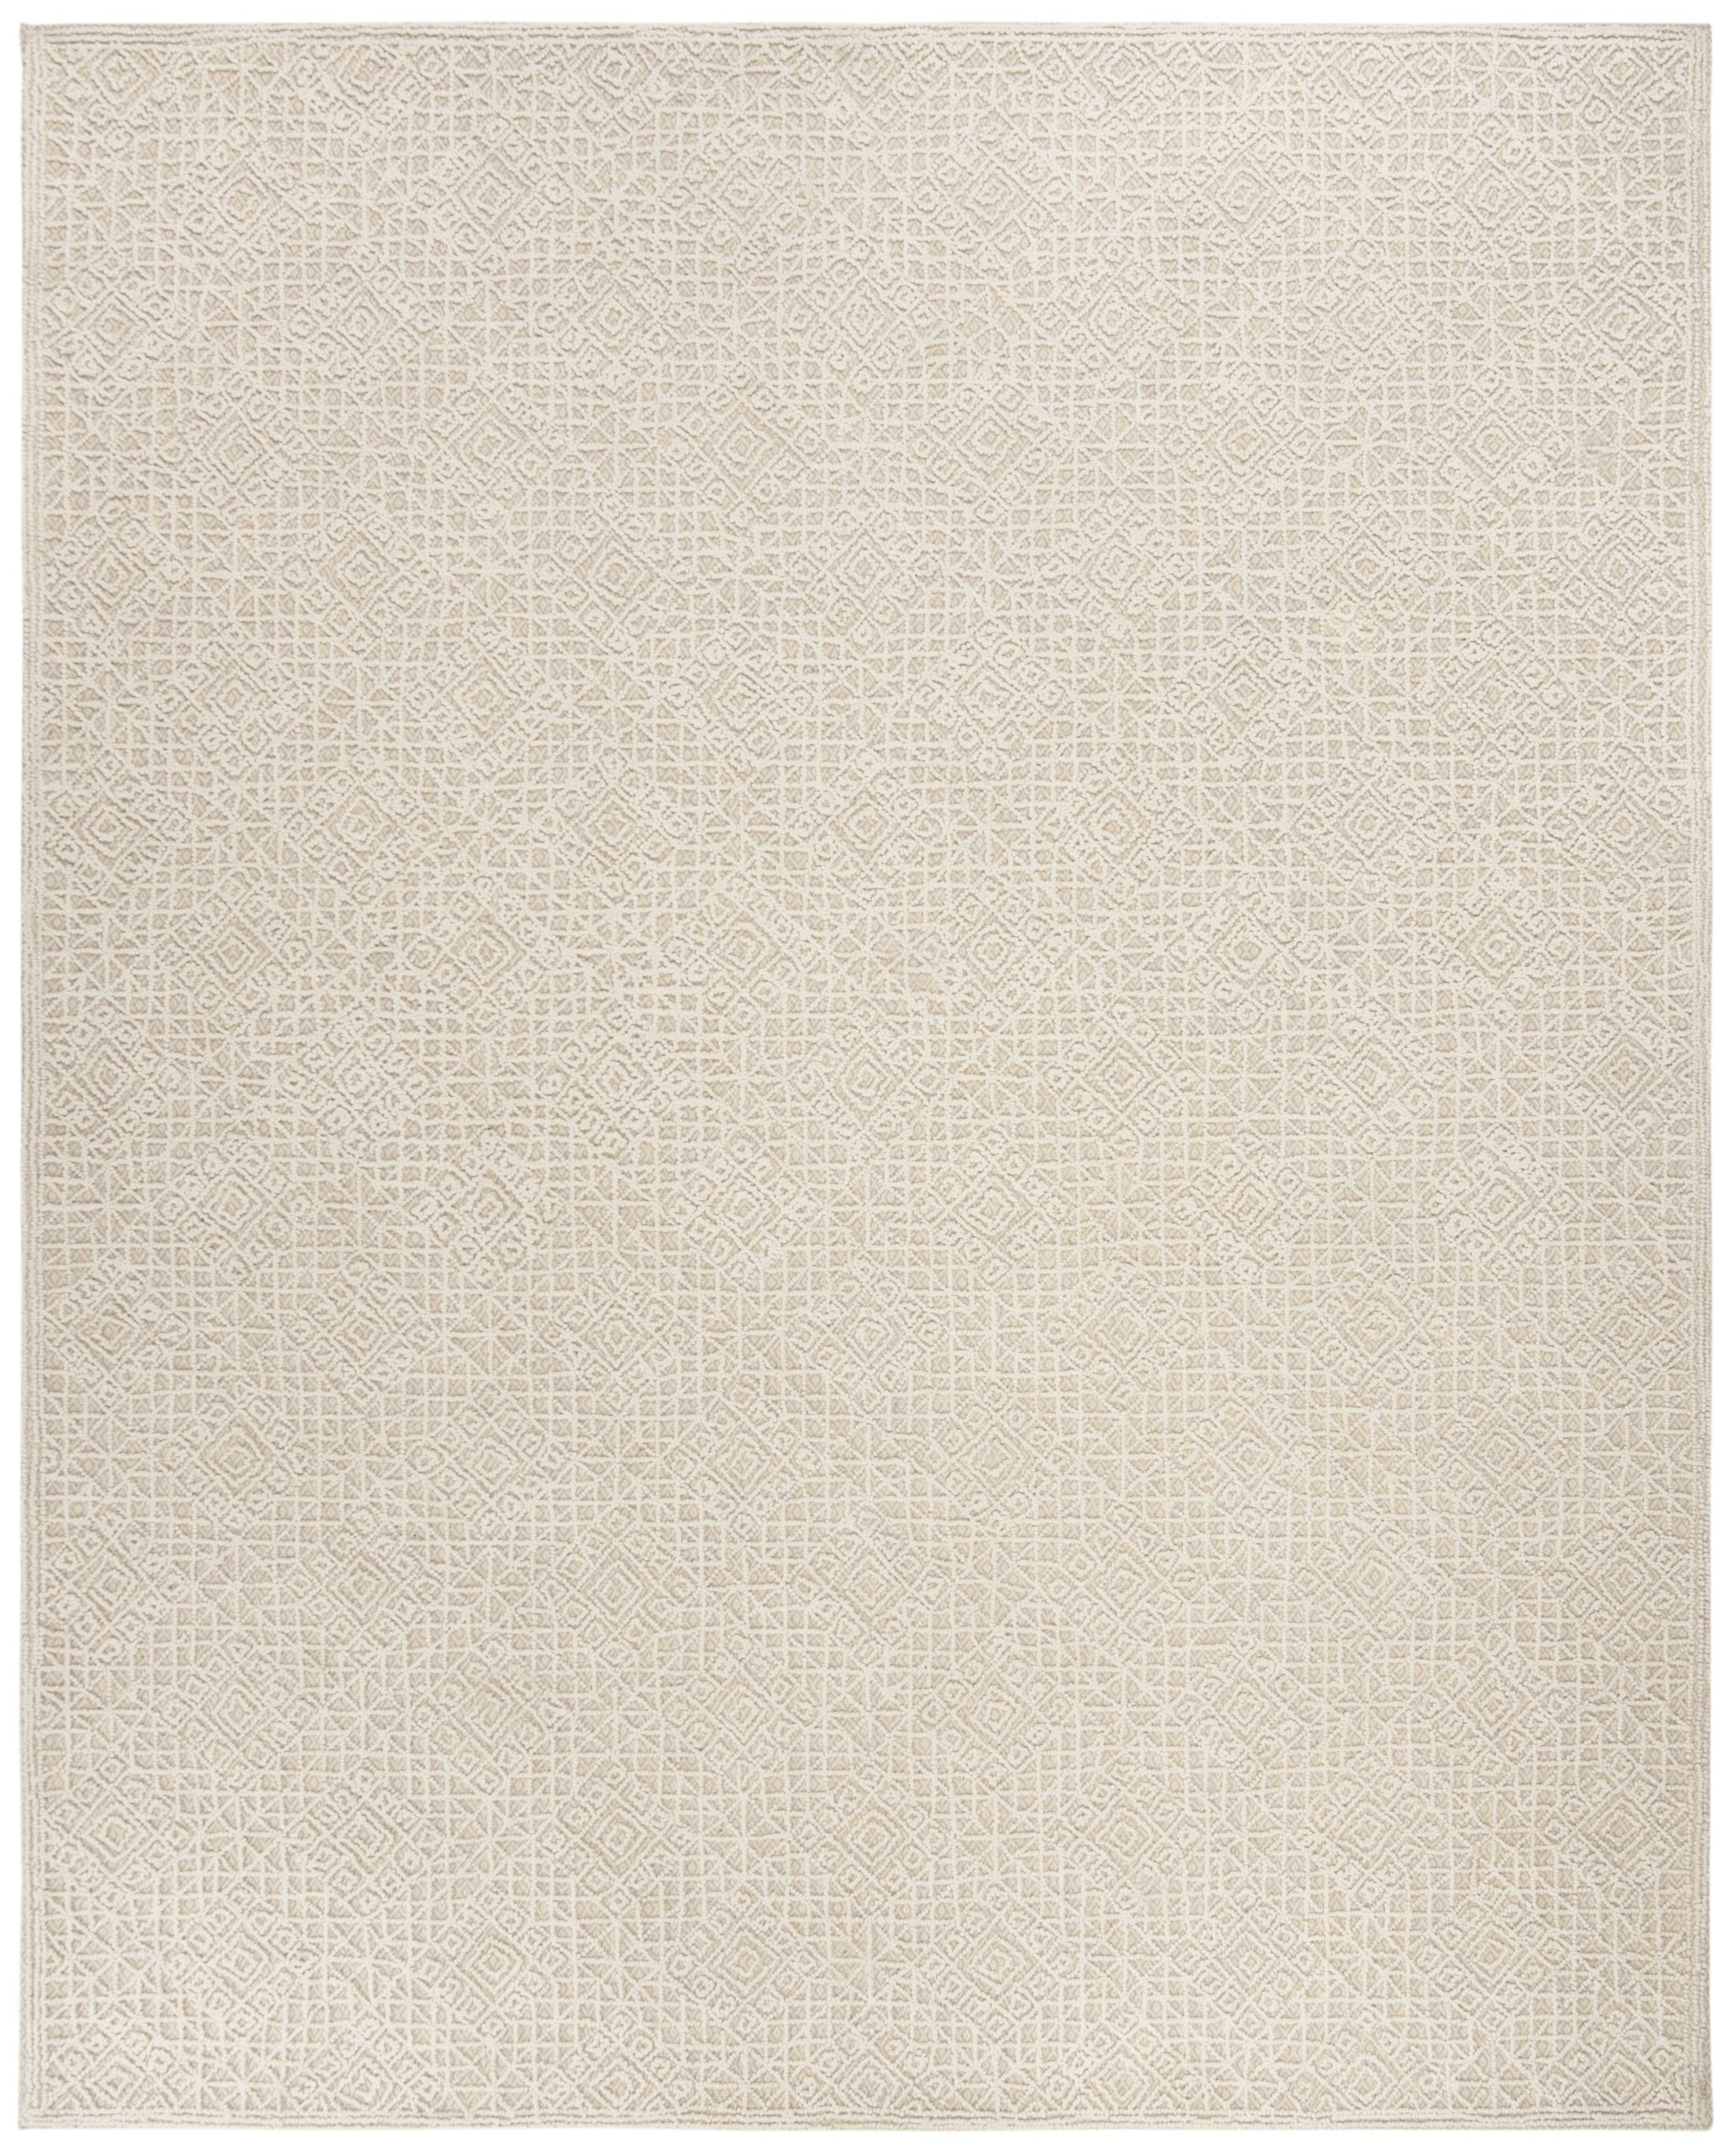 Saranac Hand-Tufted Wool Light Beige Area Rug Rug Size: Rectangle 5' x 8'